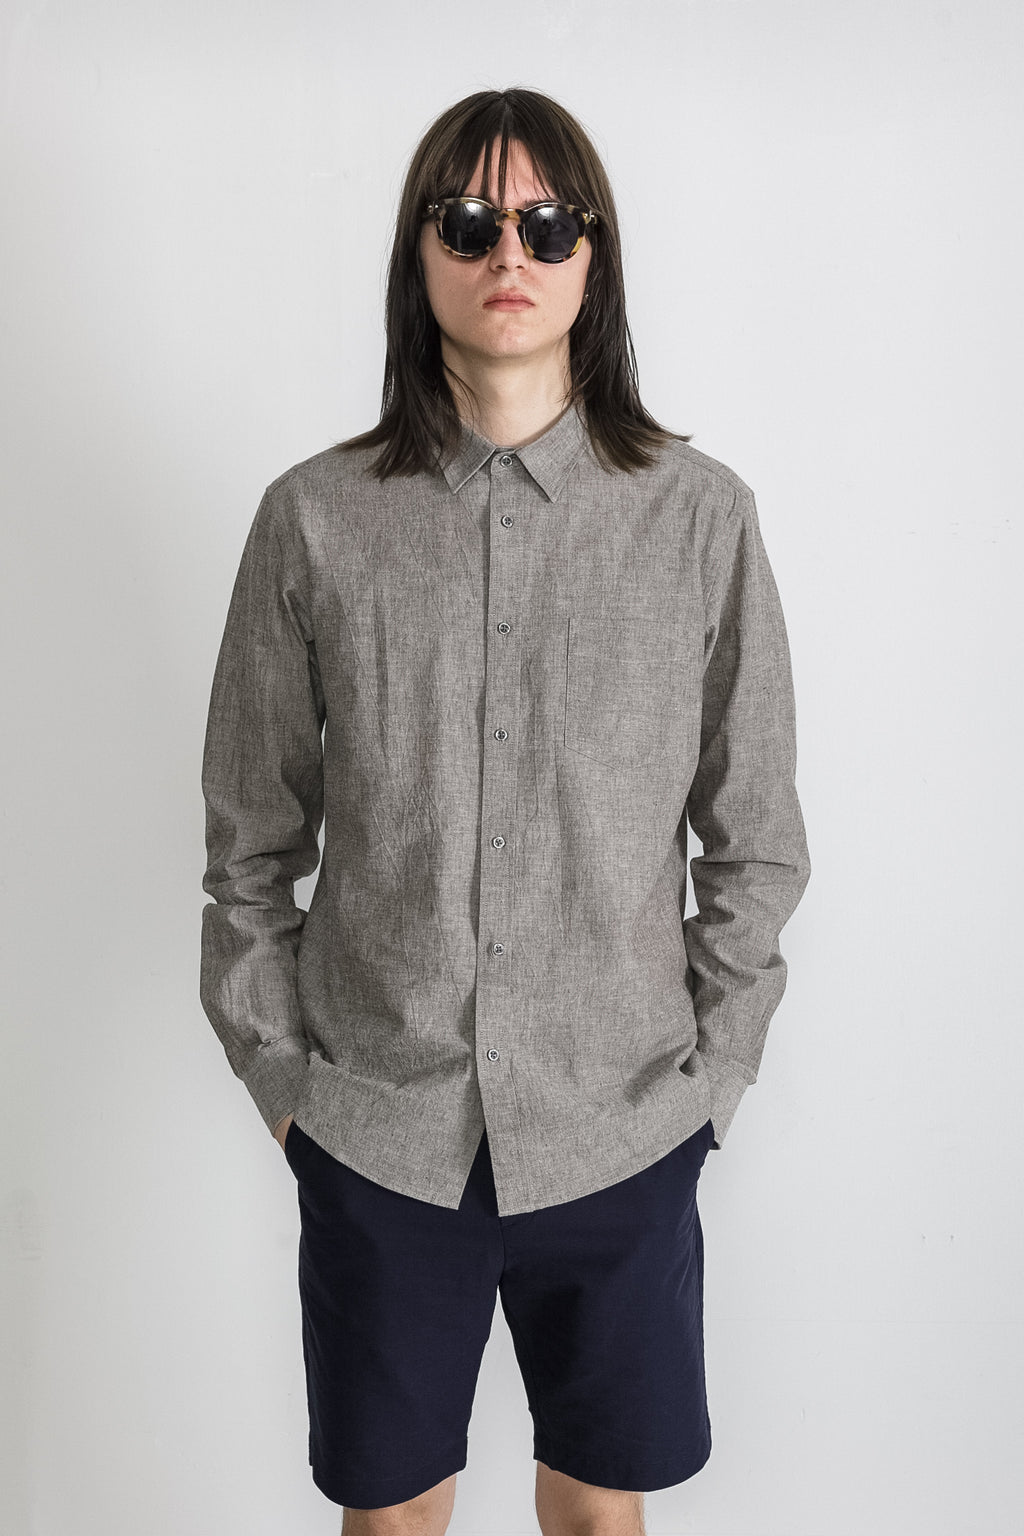 Japanese Dyed Canvas in Grey 001